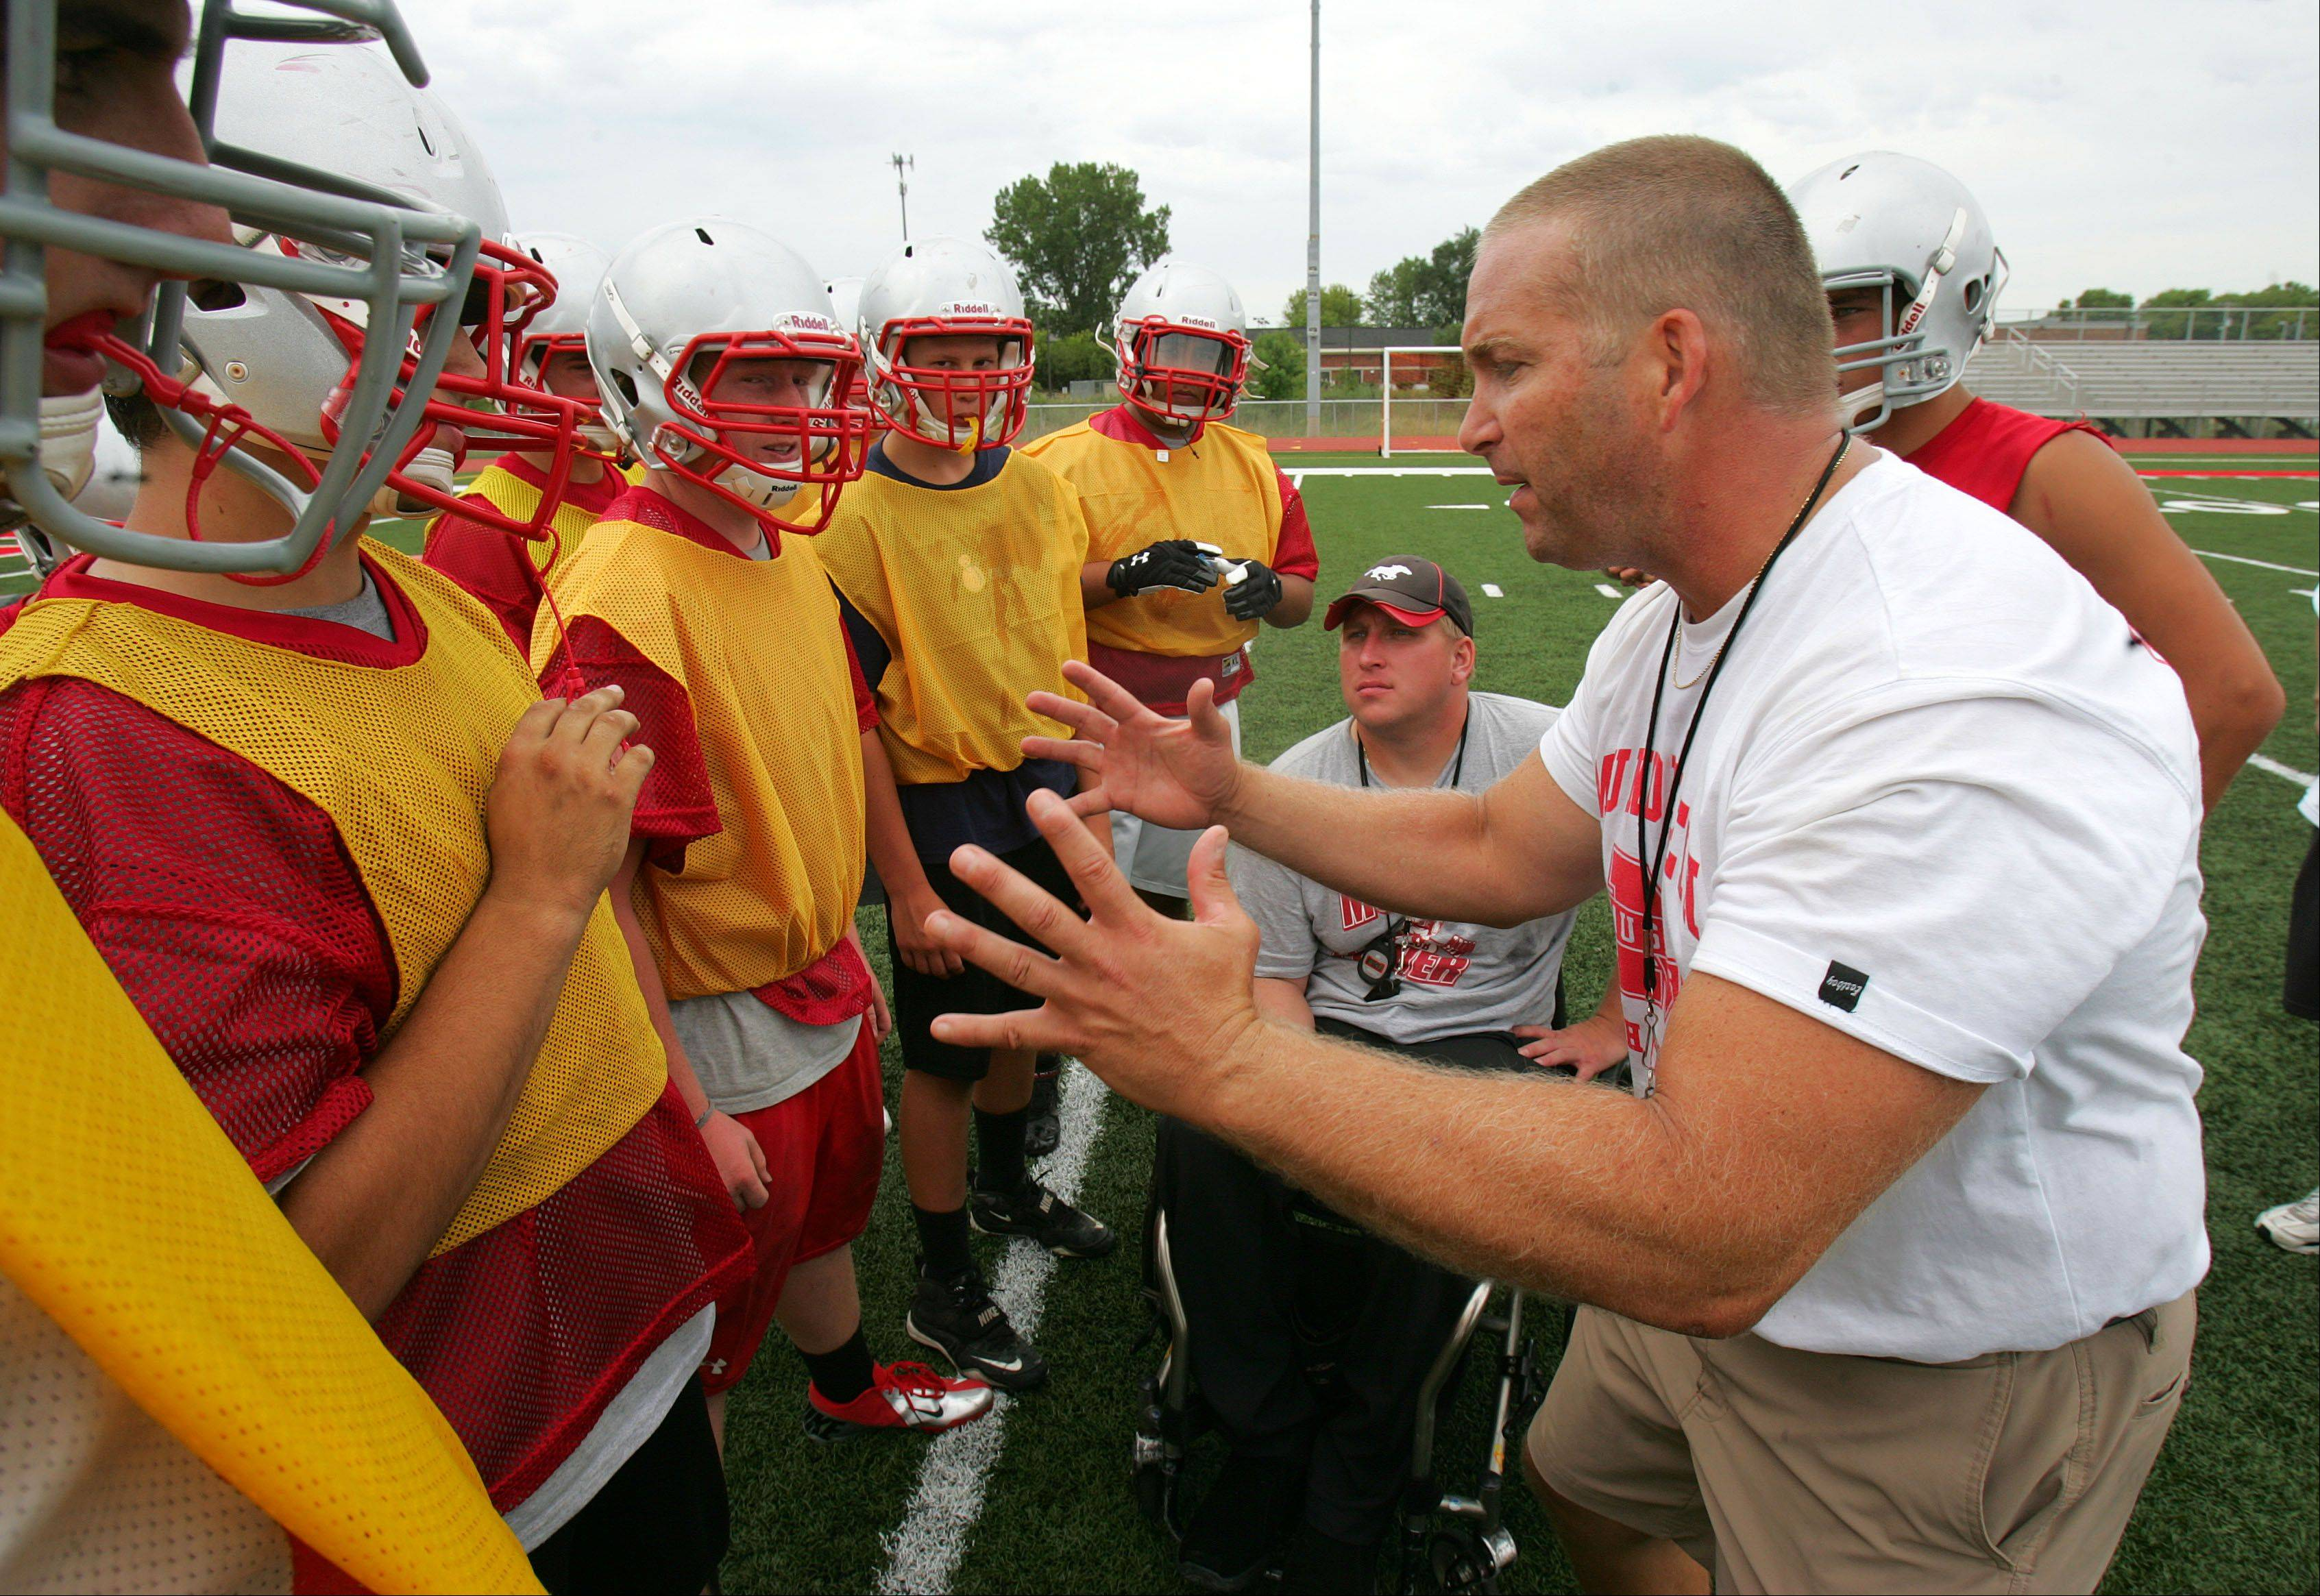 Mundelein coach George Kaider runs practice Wednesday afternoon in Mundelein.